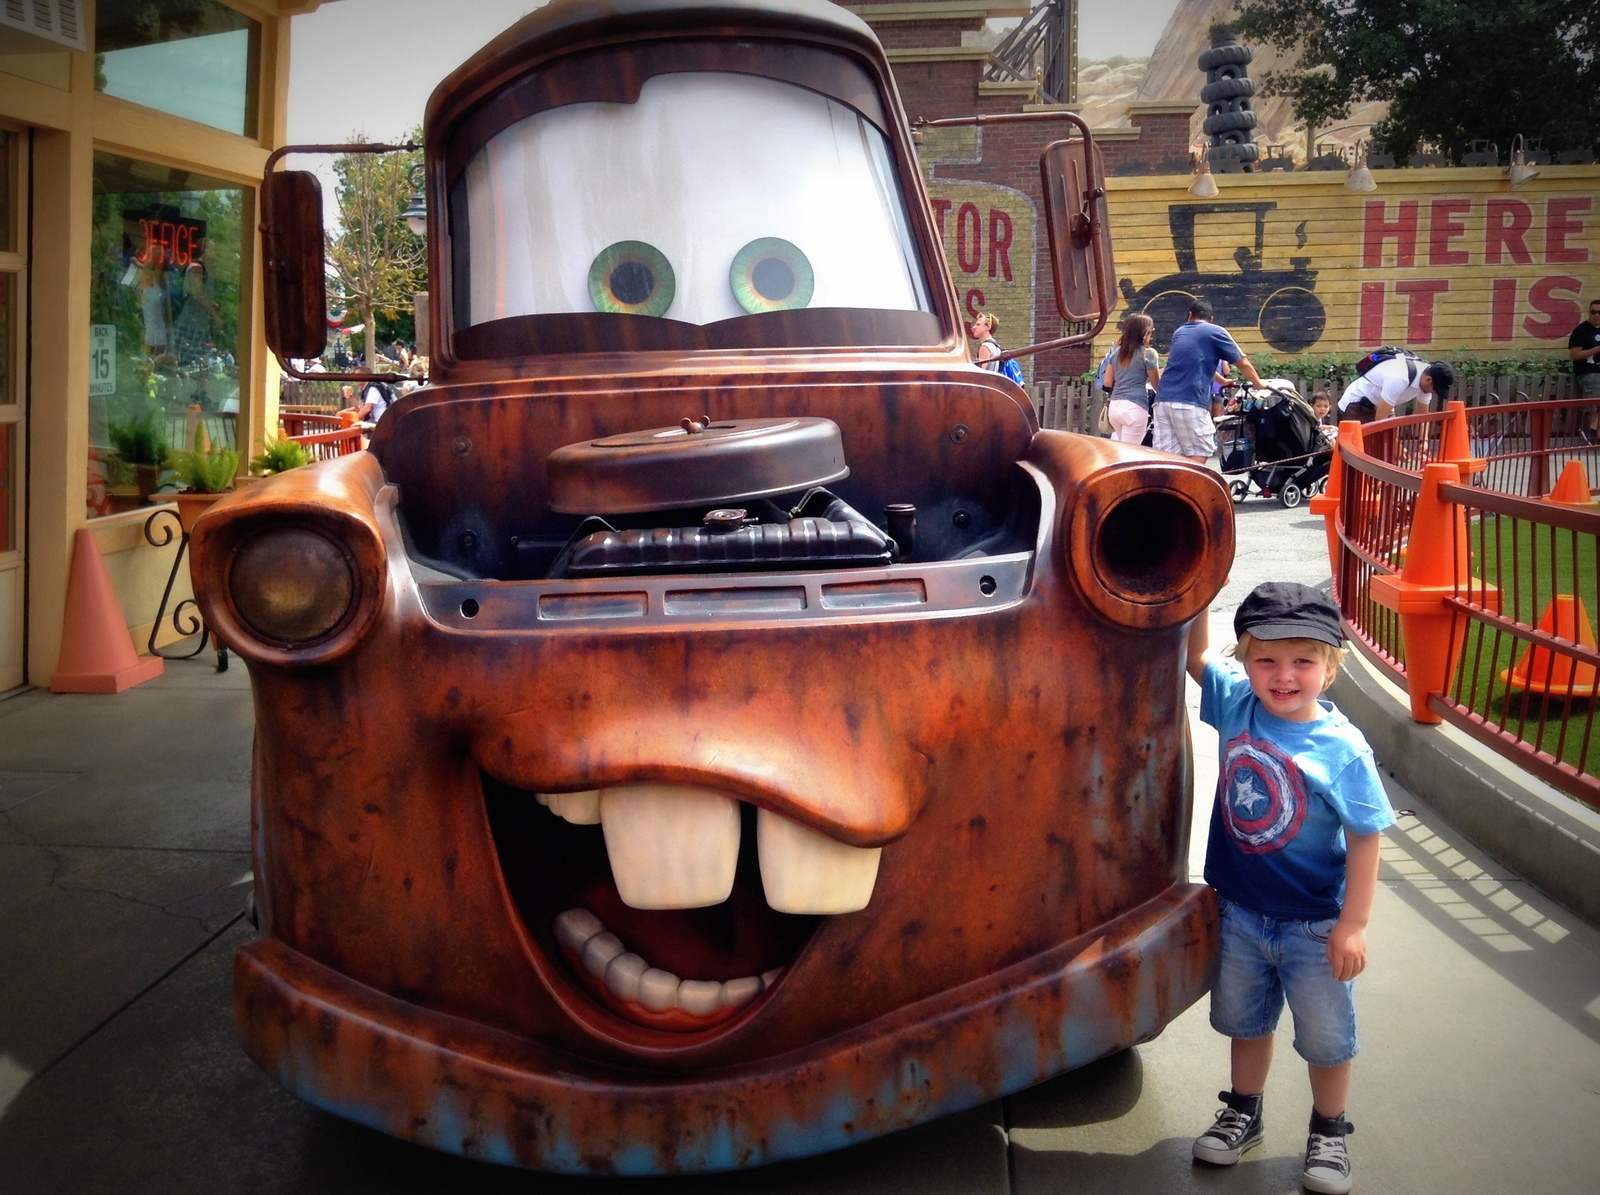 Which Disneyland park do we go to with toddlers - California Adventure!